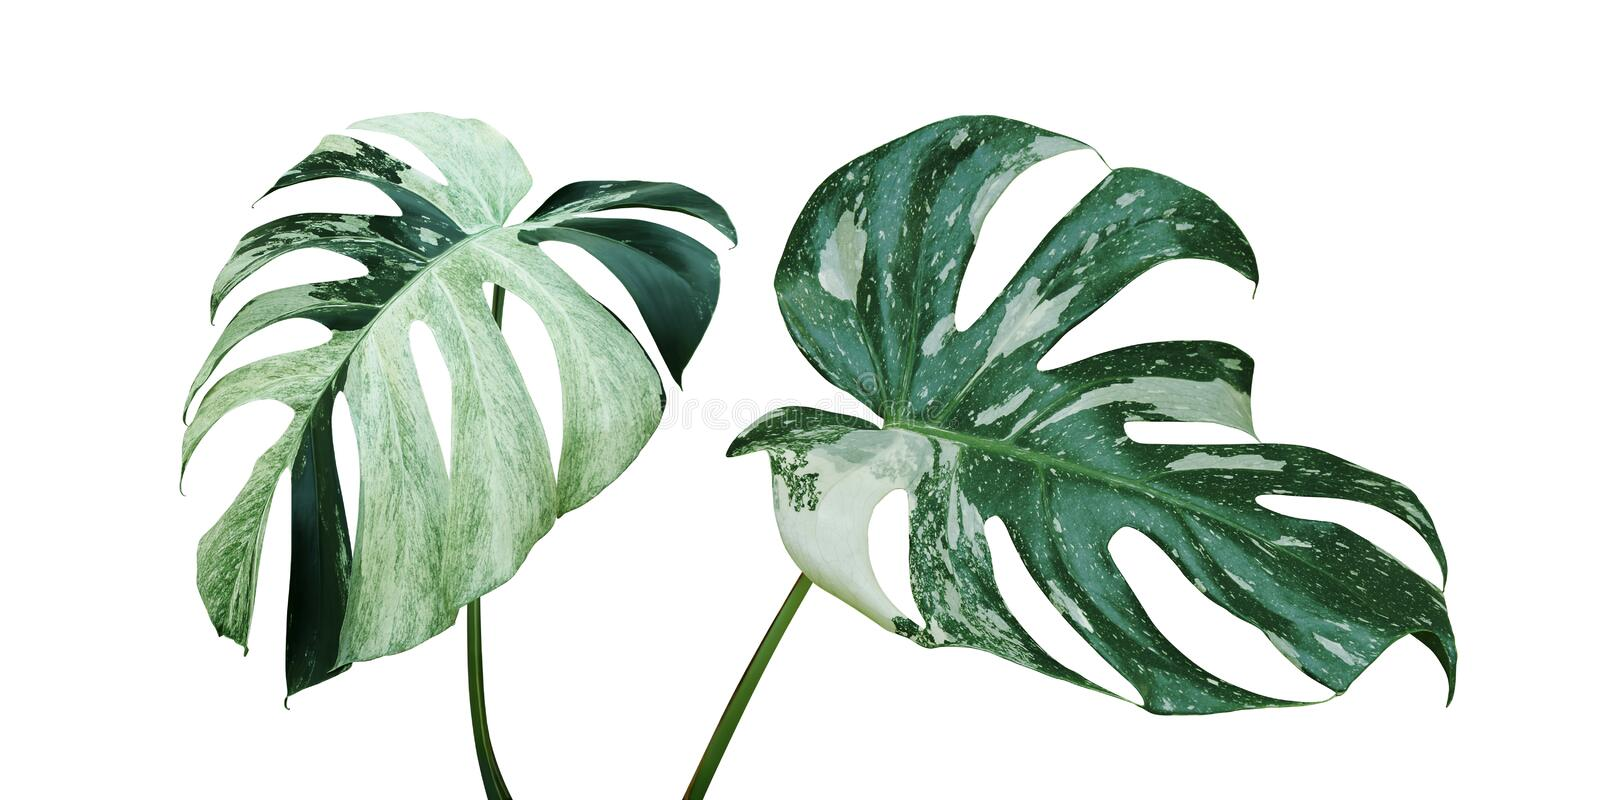 Variegated Leaves of Monstera Plant Isolated on White Background royalty free stock images